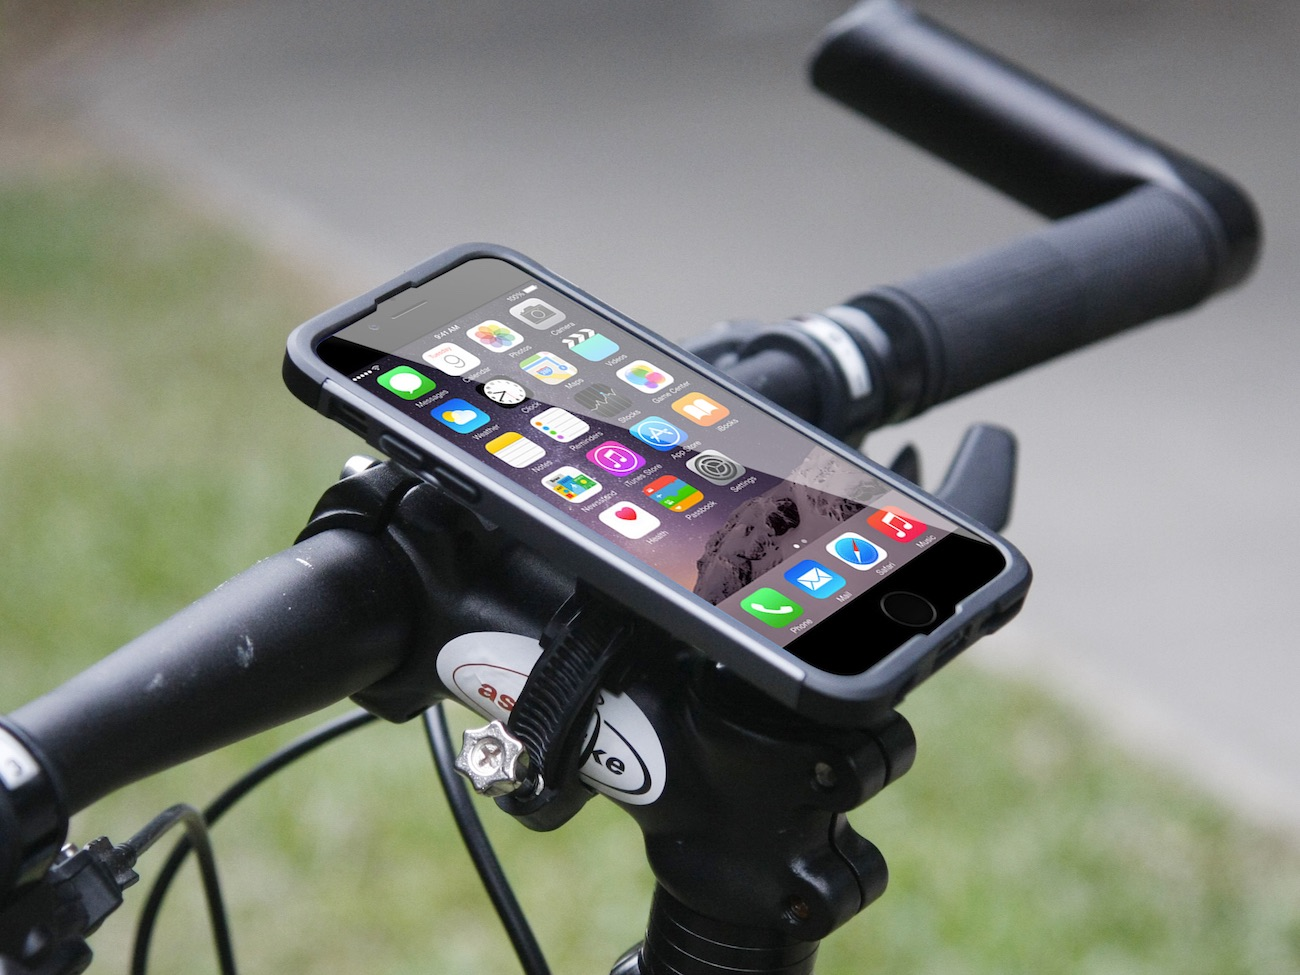 competitive price fbe45 76957 Armor-X iPhone 6 Mount Case for jogging, Car & Bike